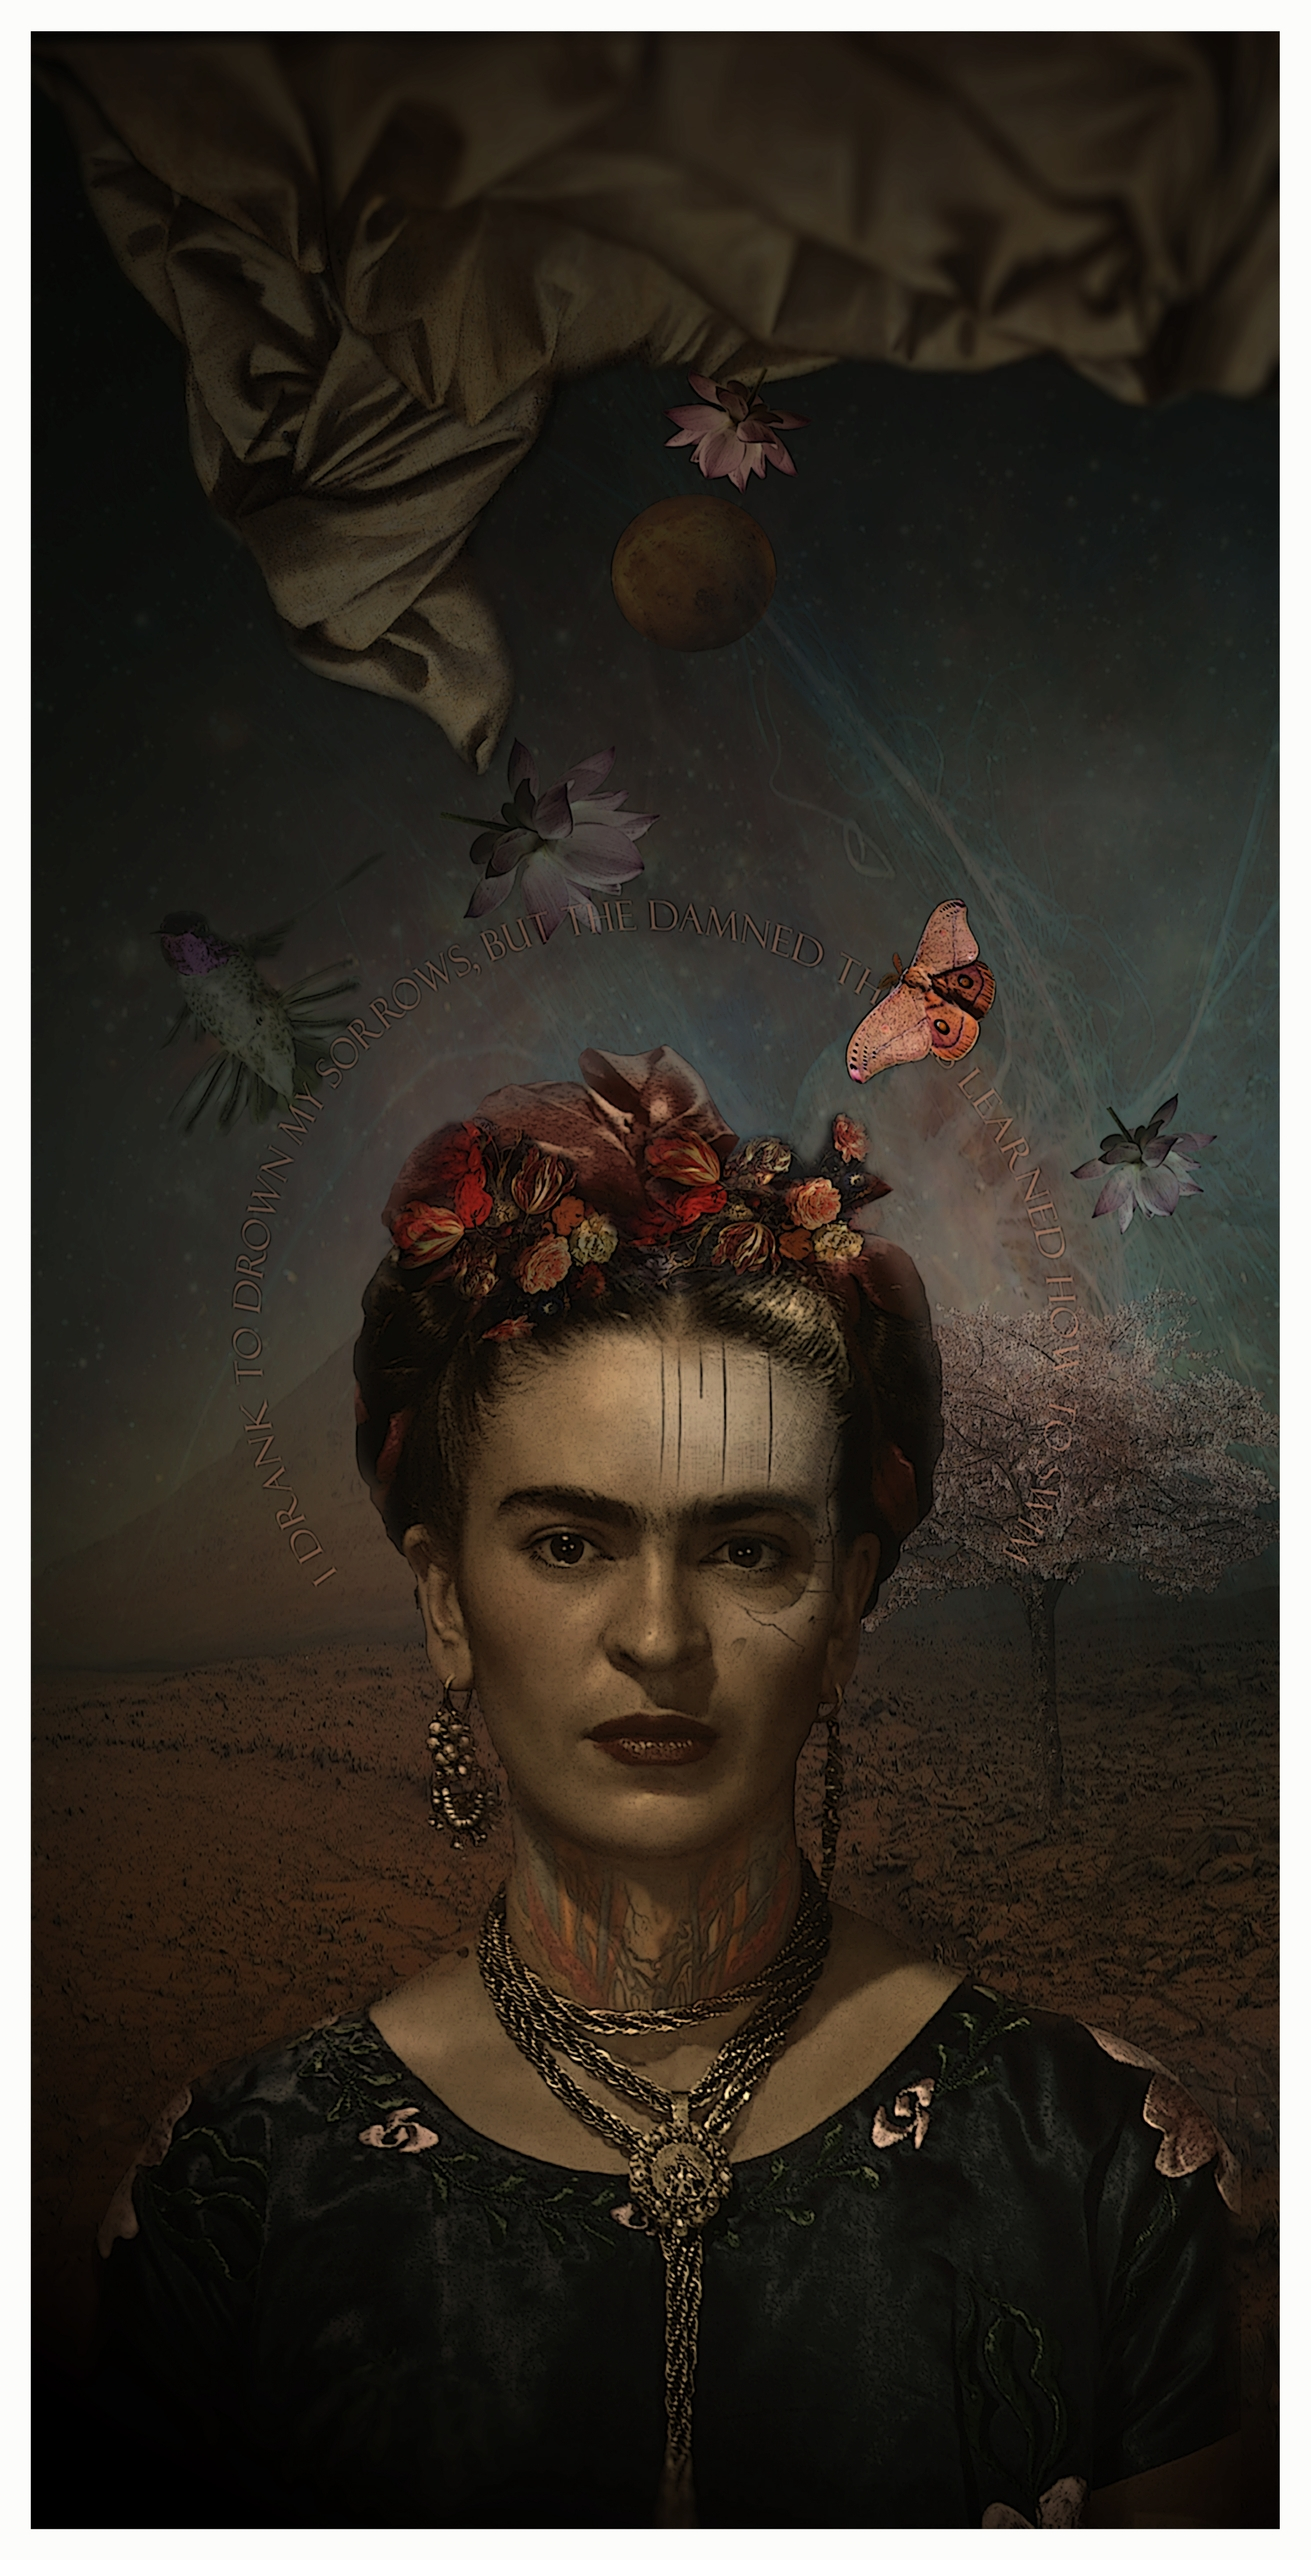 collage#frida#lady sorrows#alte - astroturf | ello